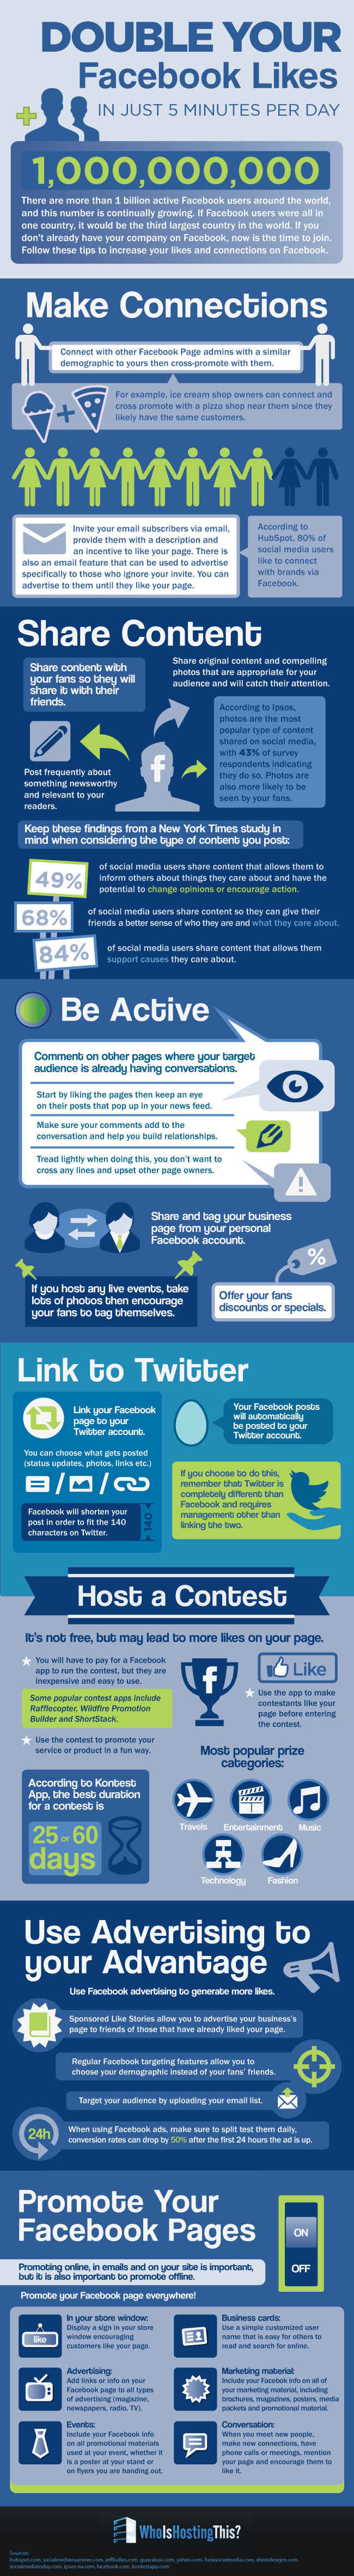 How to Double Your Facebook Likes #infographic #Social Media #Facebook #Facebook Likes